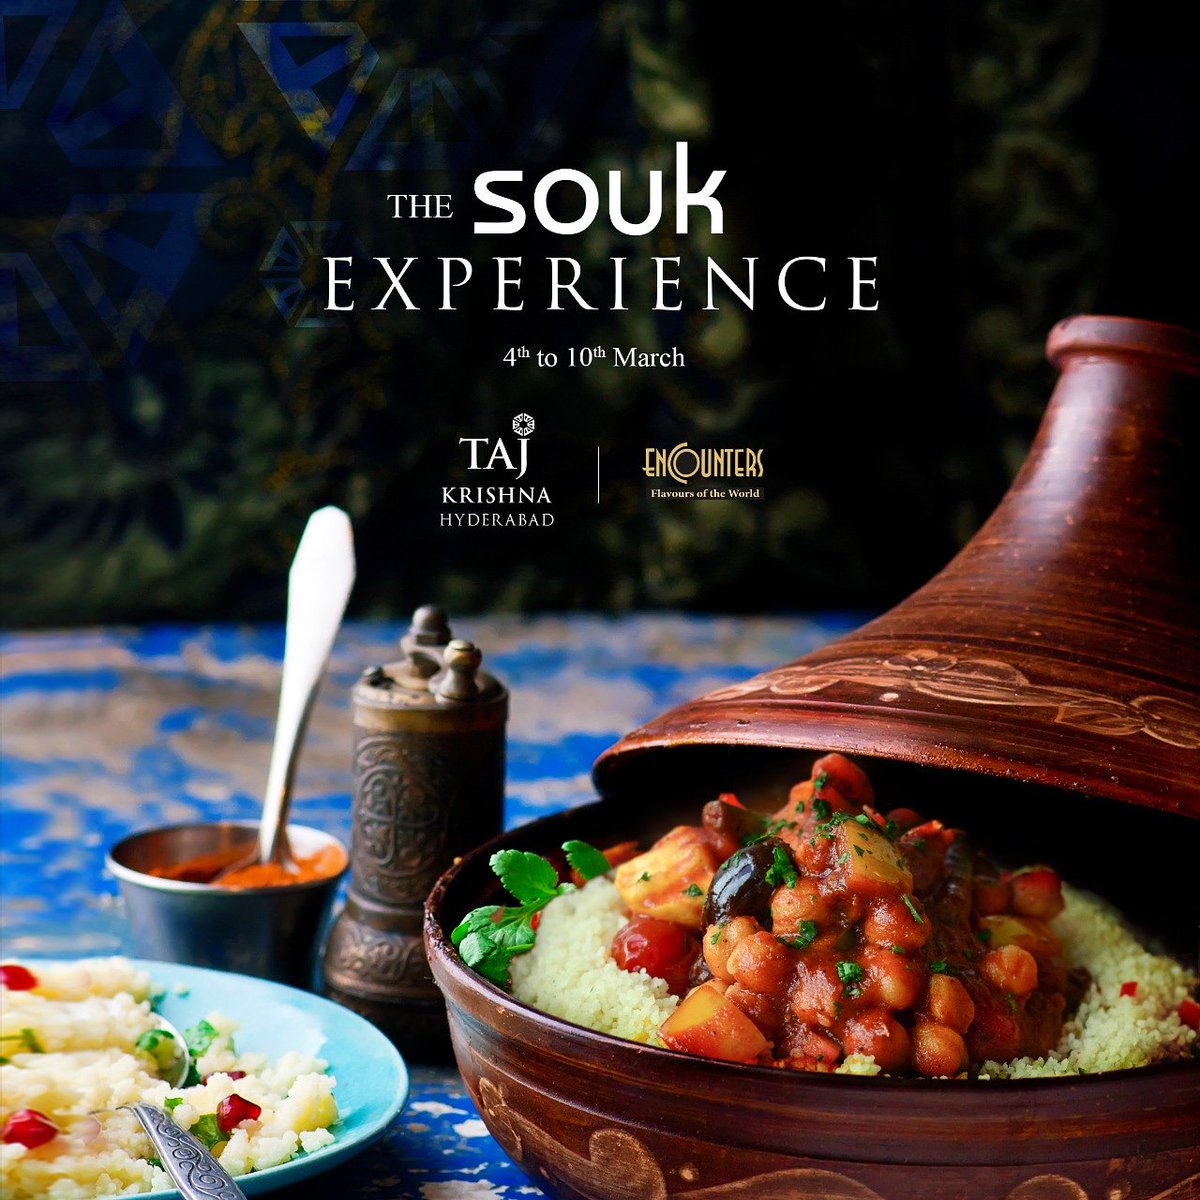 The SOUK experience at @tajkrishnahyd  We are bringing home the rich Eastern Mediterranean experience of the @TajMahalMumbai  4th to 10th March  Encounters For reservations: 040 6629 3326  #TajKrishnaHyderabad #tajkrishnahotel #TajMahalPalace #Souk #TheSoukExperience #encounters